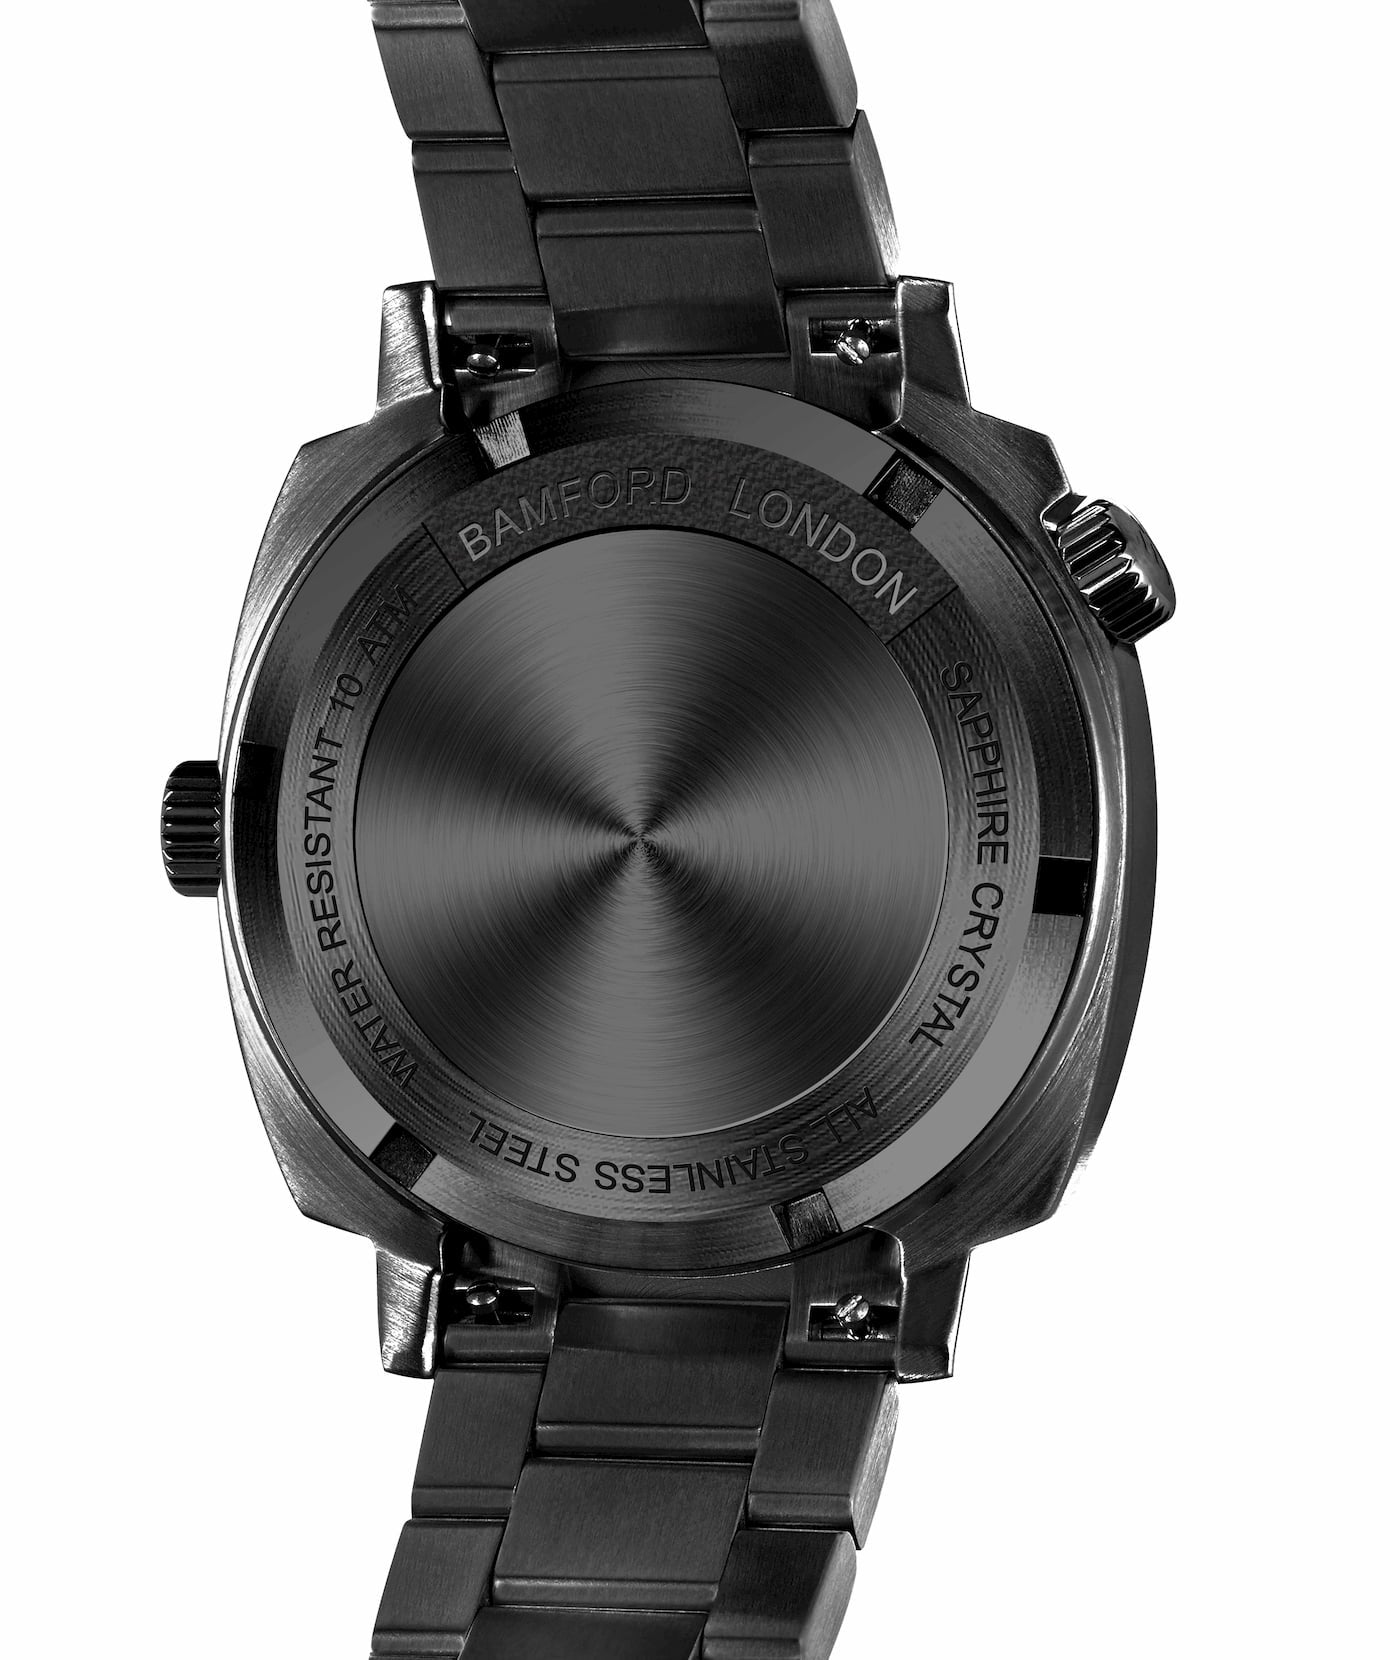 https://cdn.shopify.com/s/files/1/0140/7218/4890/products/Bamford_GMT_Predator_BLACK_Bracelet_Back_1536x.jpg?v=1588601381